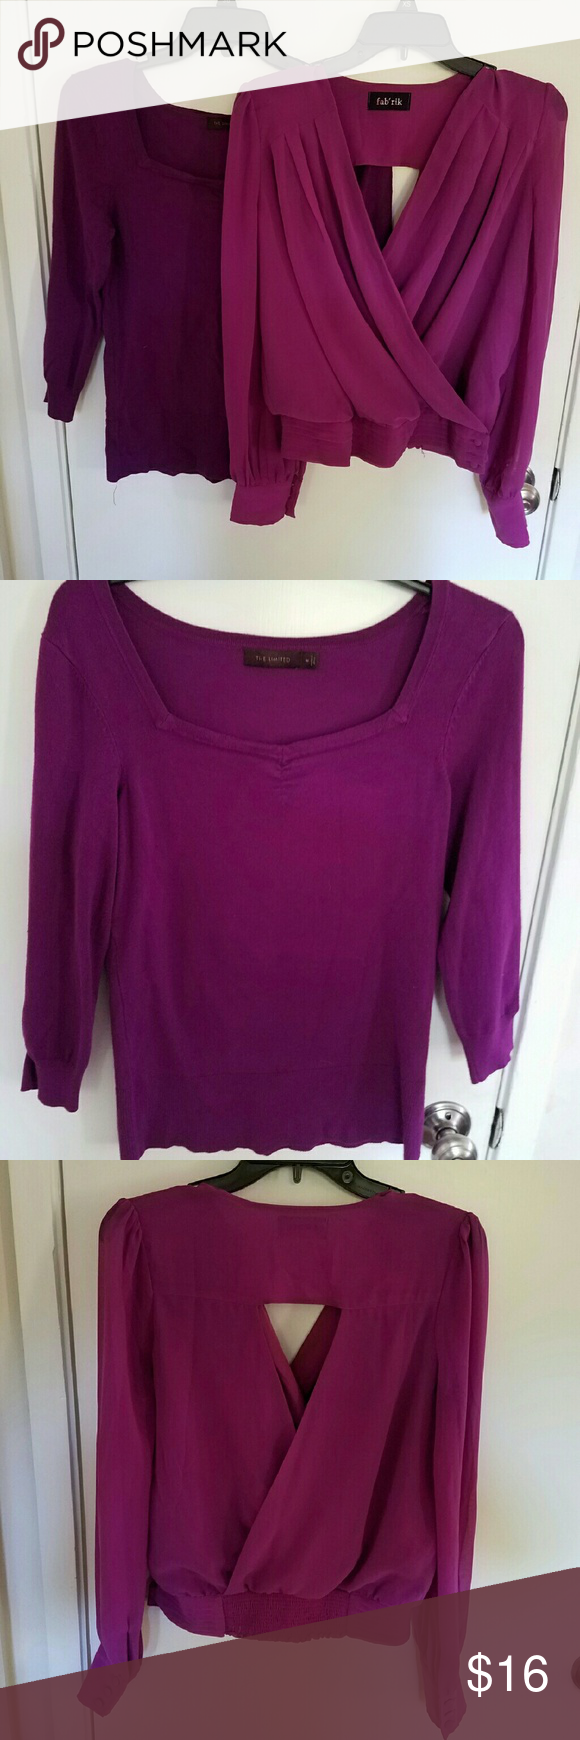 Purple Fuchsia 2PC Bundle The Limited M The boatneck 3/4 sleeve top might be considered a thin sweater. It is form fitting with its stretch. Versatile day or night piece. There is some very, very minor wear at the corner of the collar. See the last pic. You might not even notice it in person. The other top is gorgeous! Open back. Semi sheer long sleeves. By Fab'rik. Is missing a button at the side clasp. See pic. Buttons at cuffs are all there. The Limited Tops Blouses